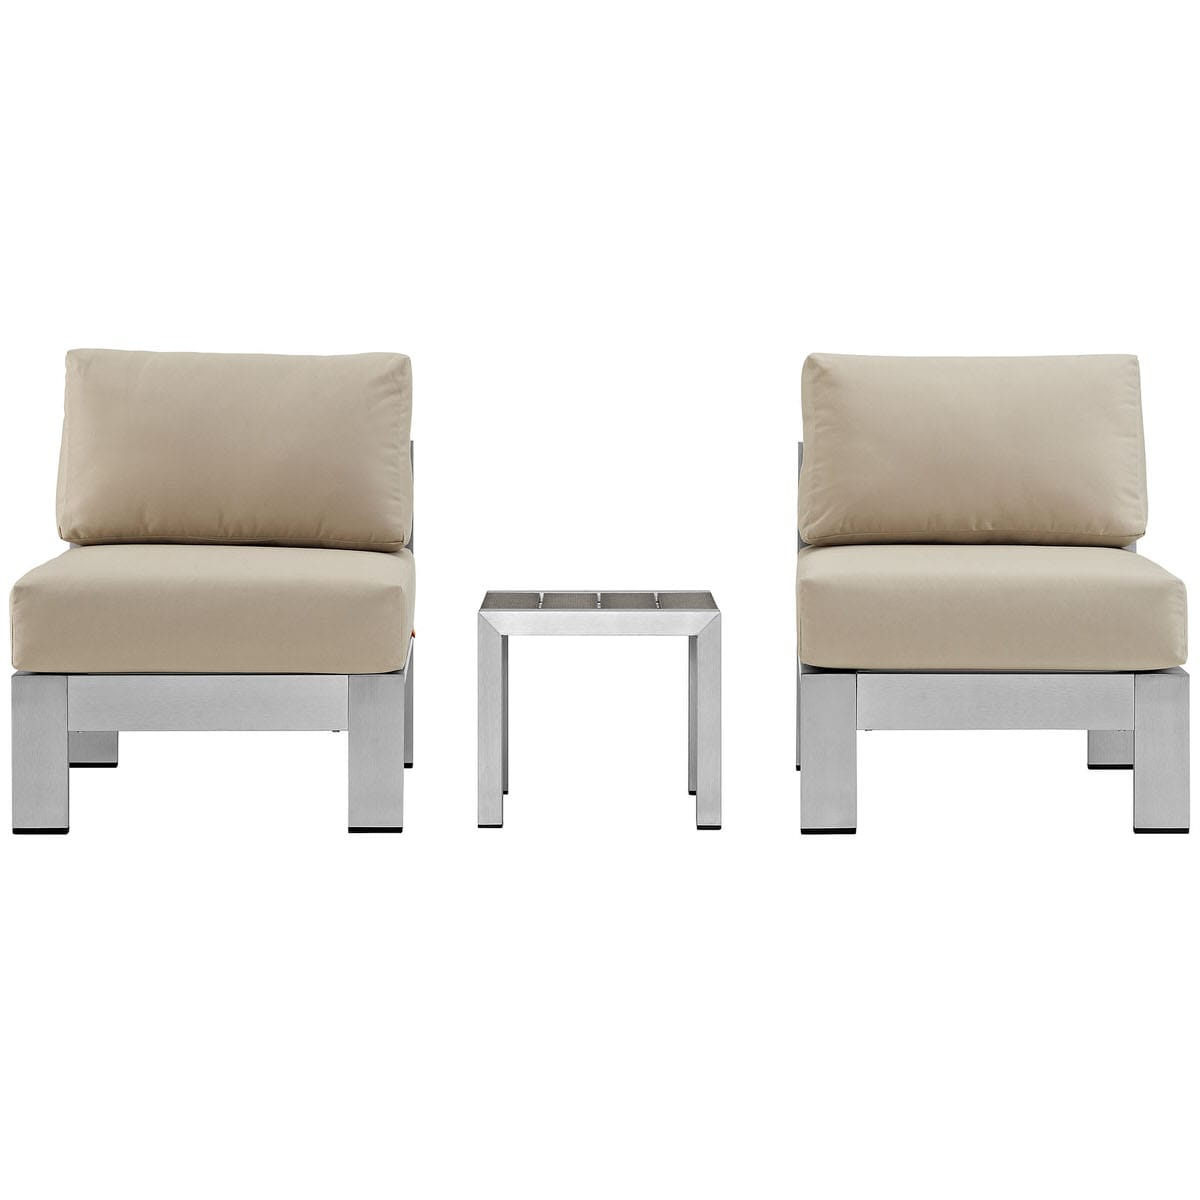 Magnificent Shore 3 Piece Outdoor Patio Aluminum Sectional Sofa Set Silver Beige By Modern Living Andrewgaddart Wooden Chair Designs For Living Room Andrewgaddartcom